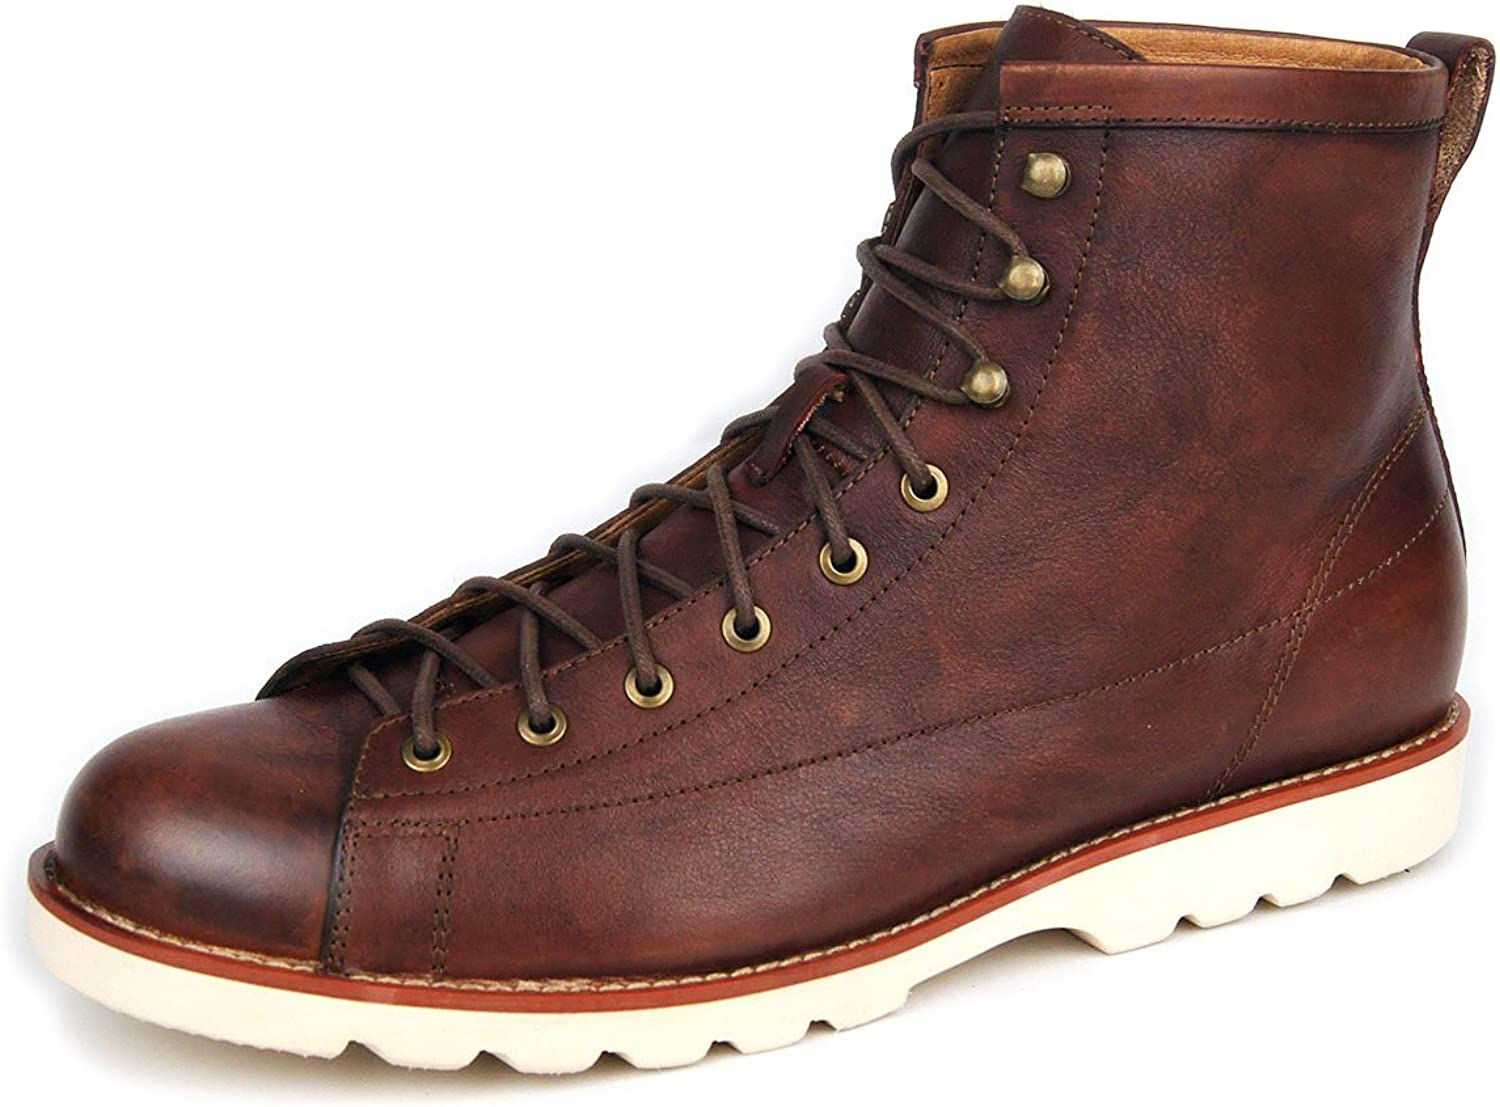 OTTO ZONE Men's Classic Moc 6  Boot Leather Chukka Boots for Men Lace up shoes OZ-JY001